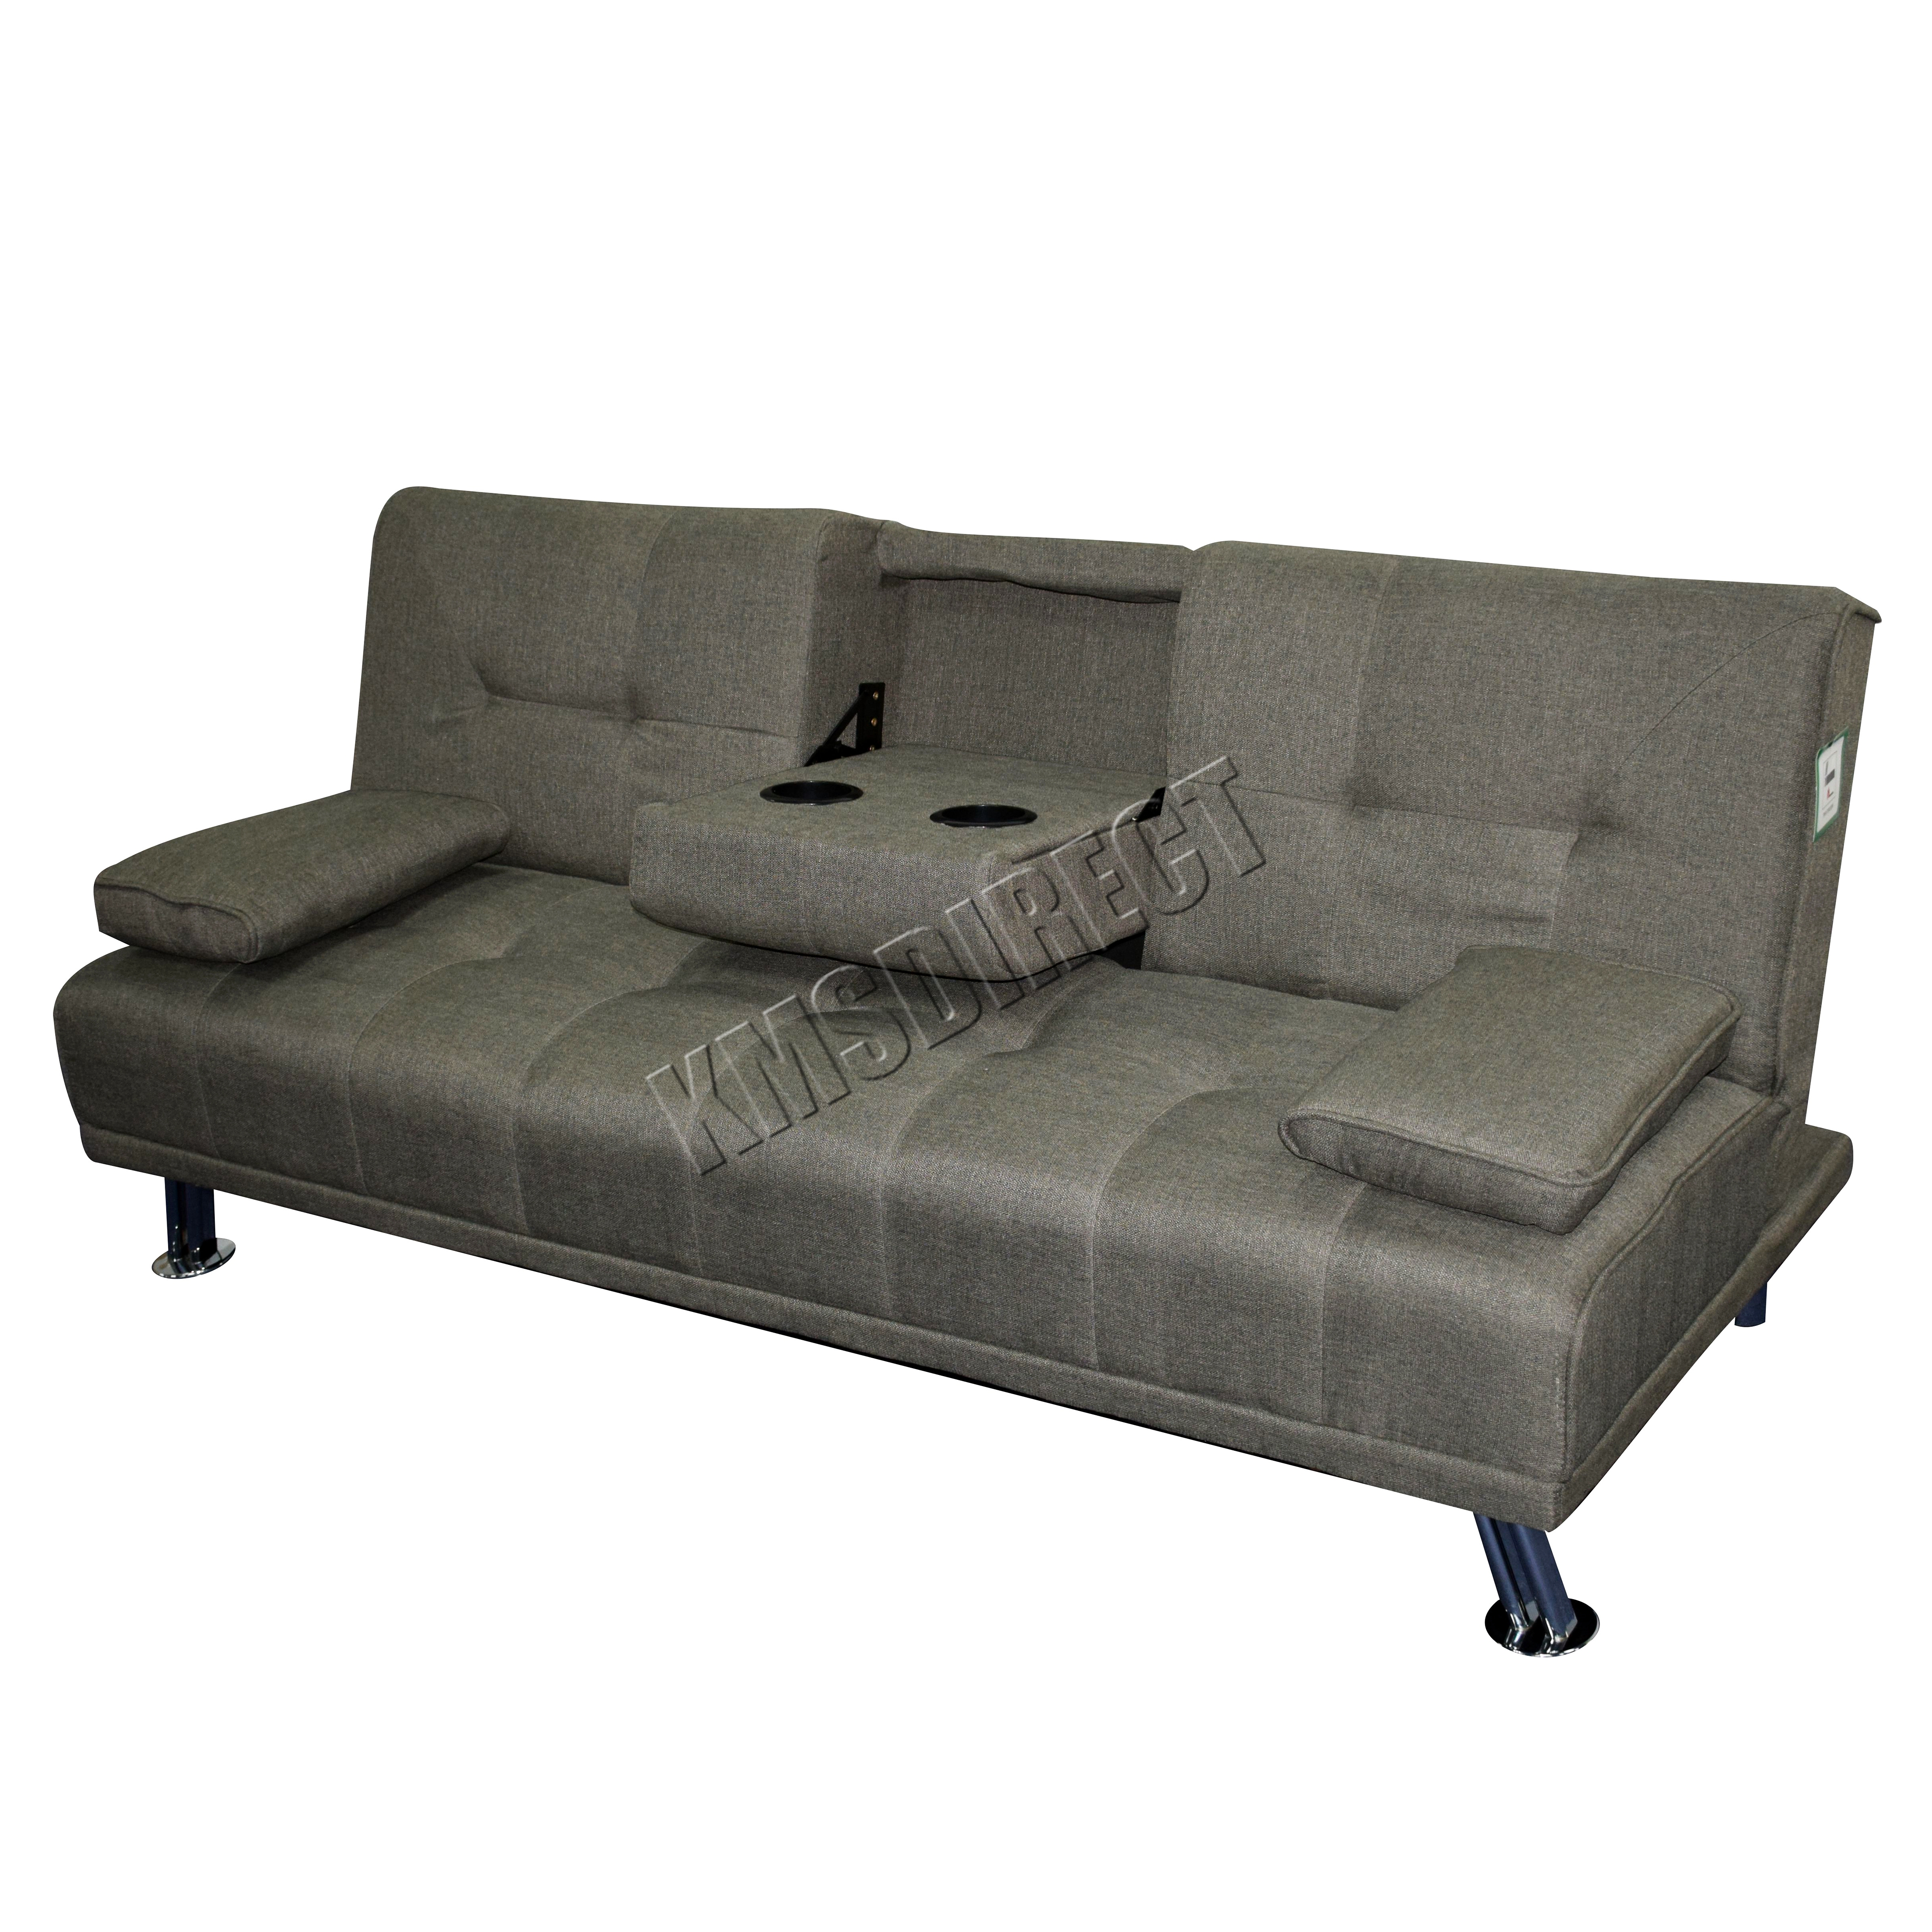 next day sofas customer reviews sofa indianapolis westwood fabric manhattan bed recliner 3 seater